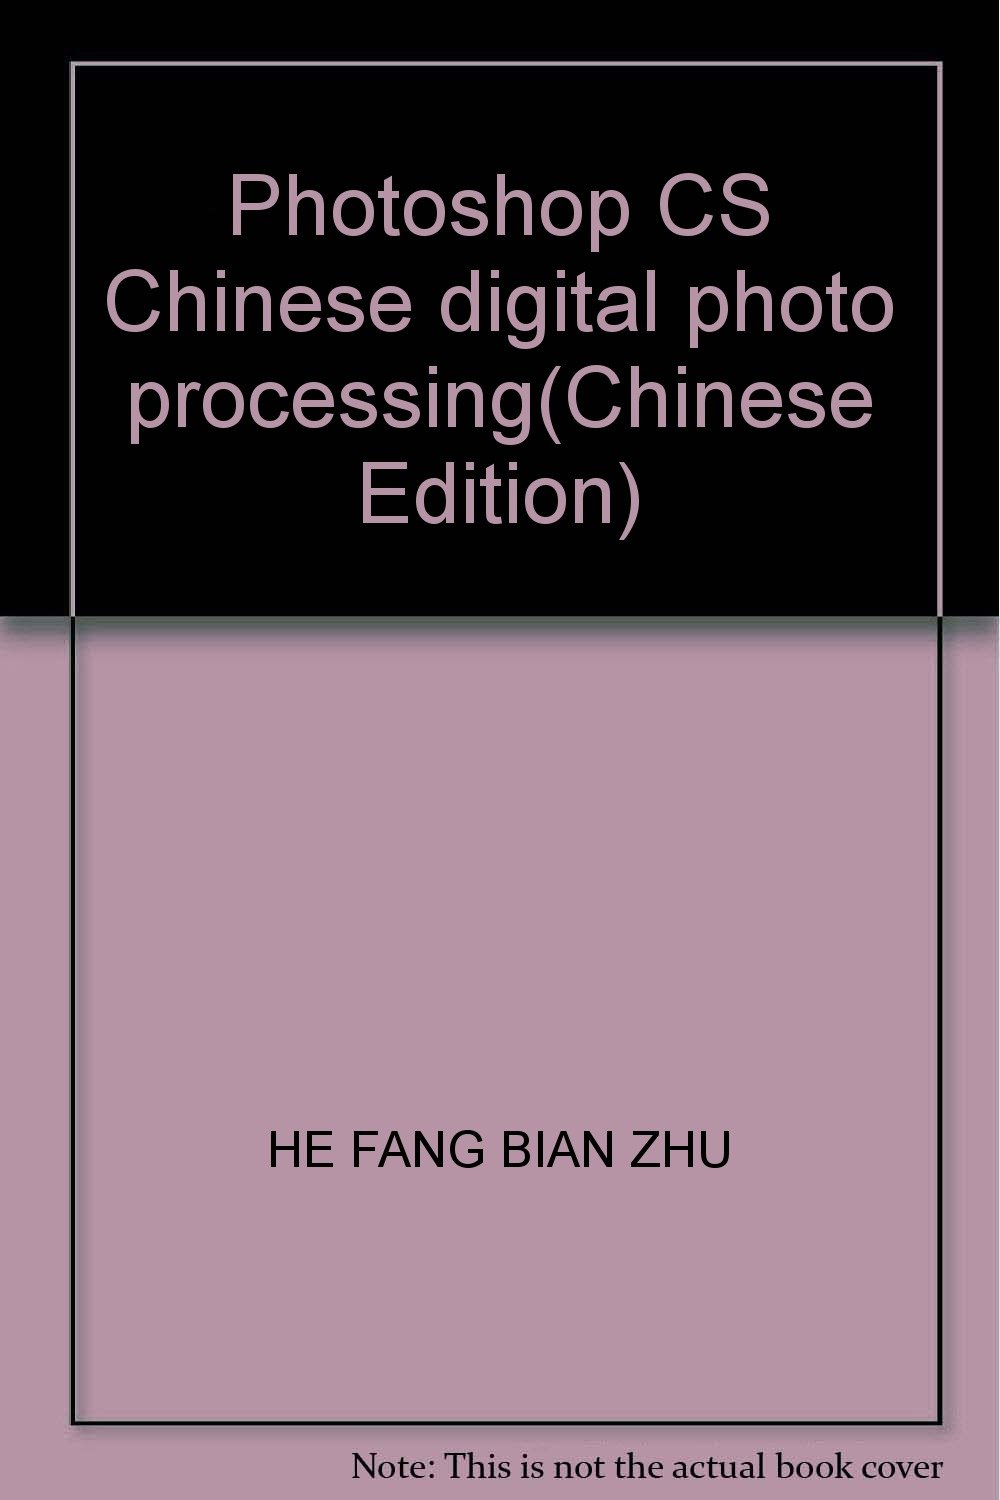 Photoshop CS Chinese digital photo processing